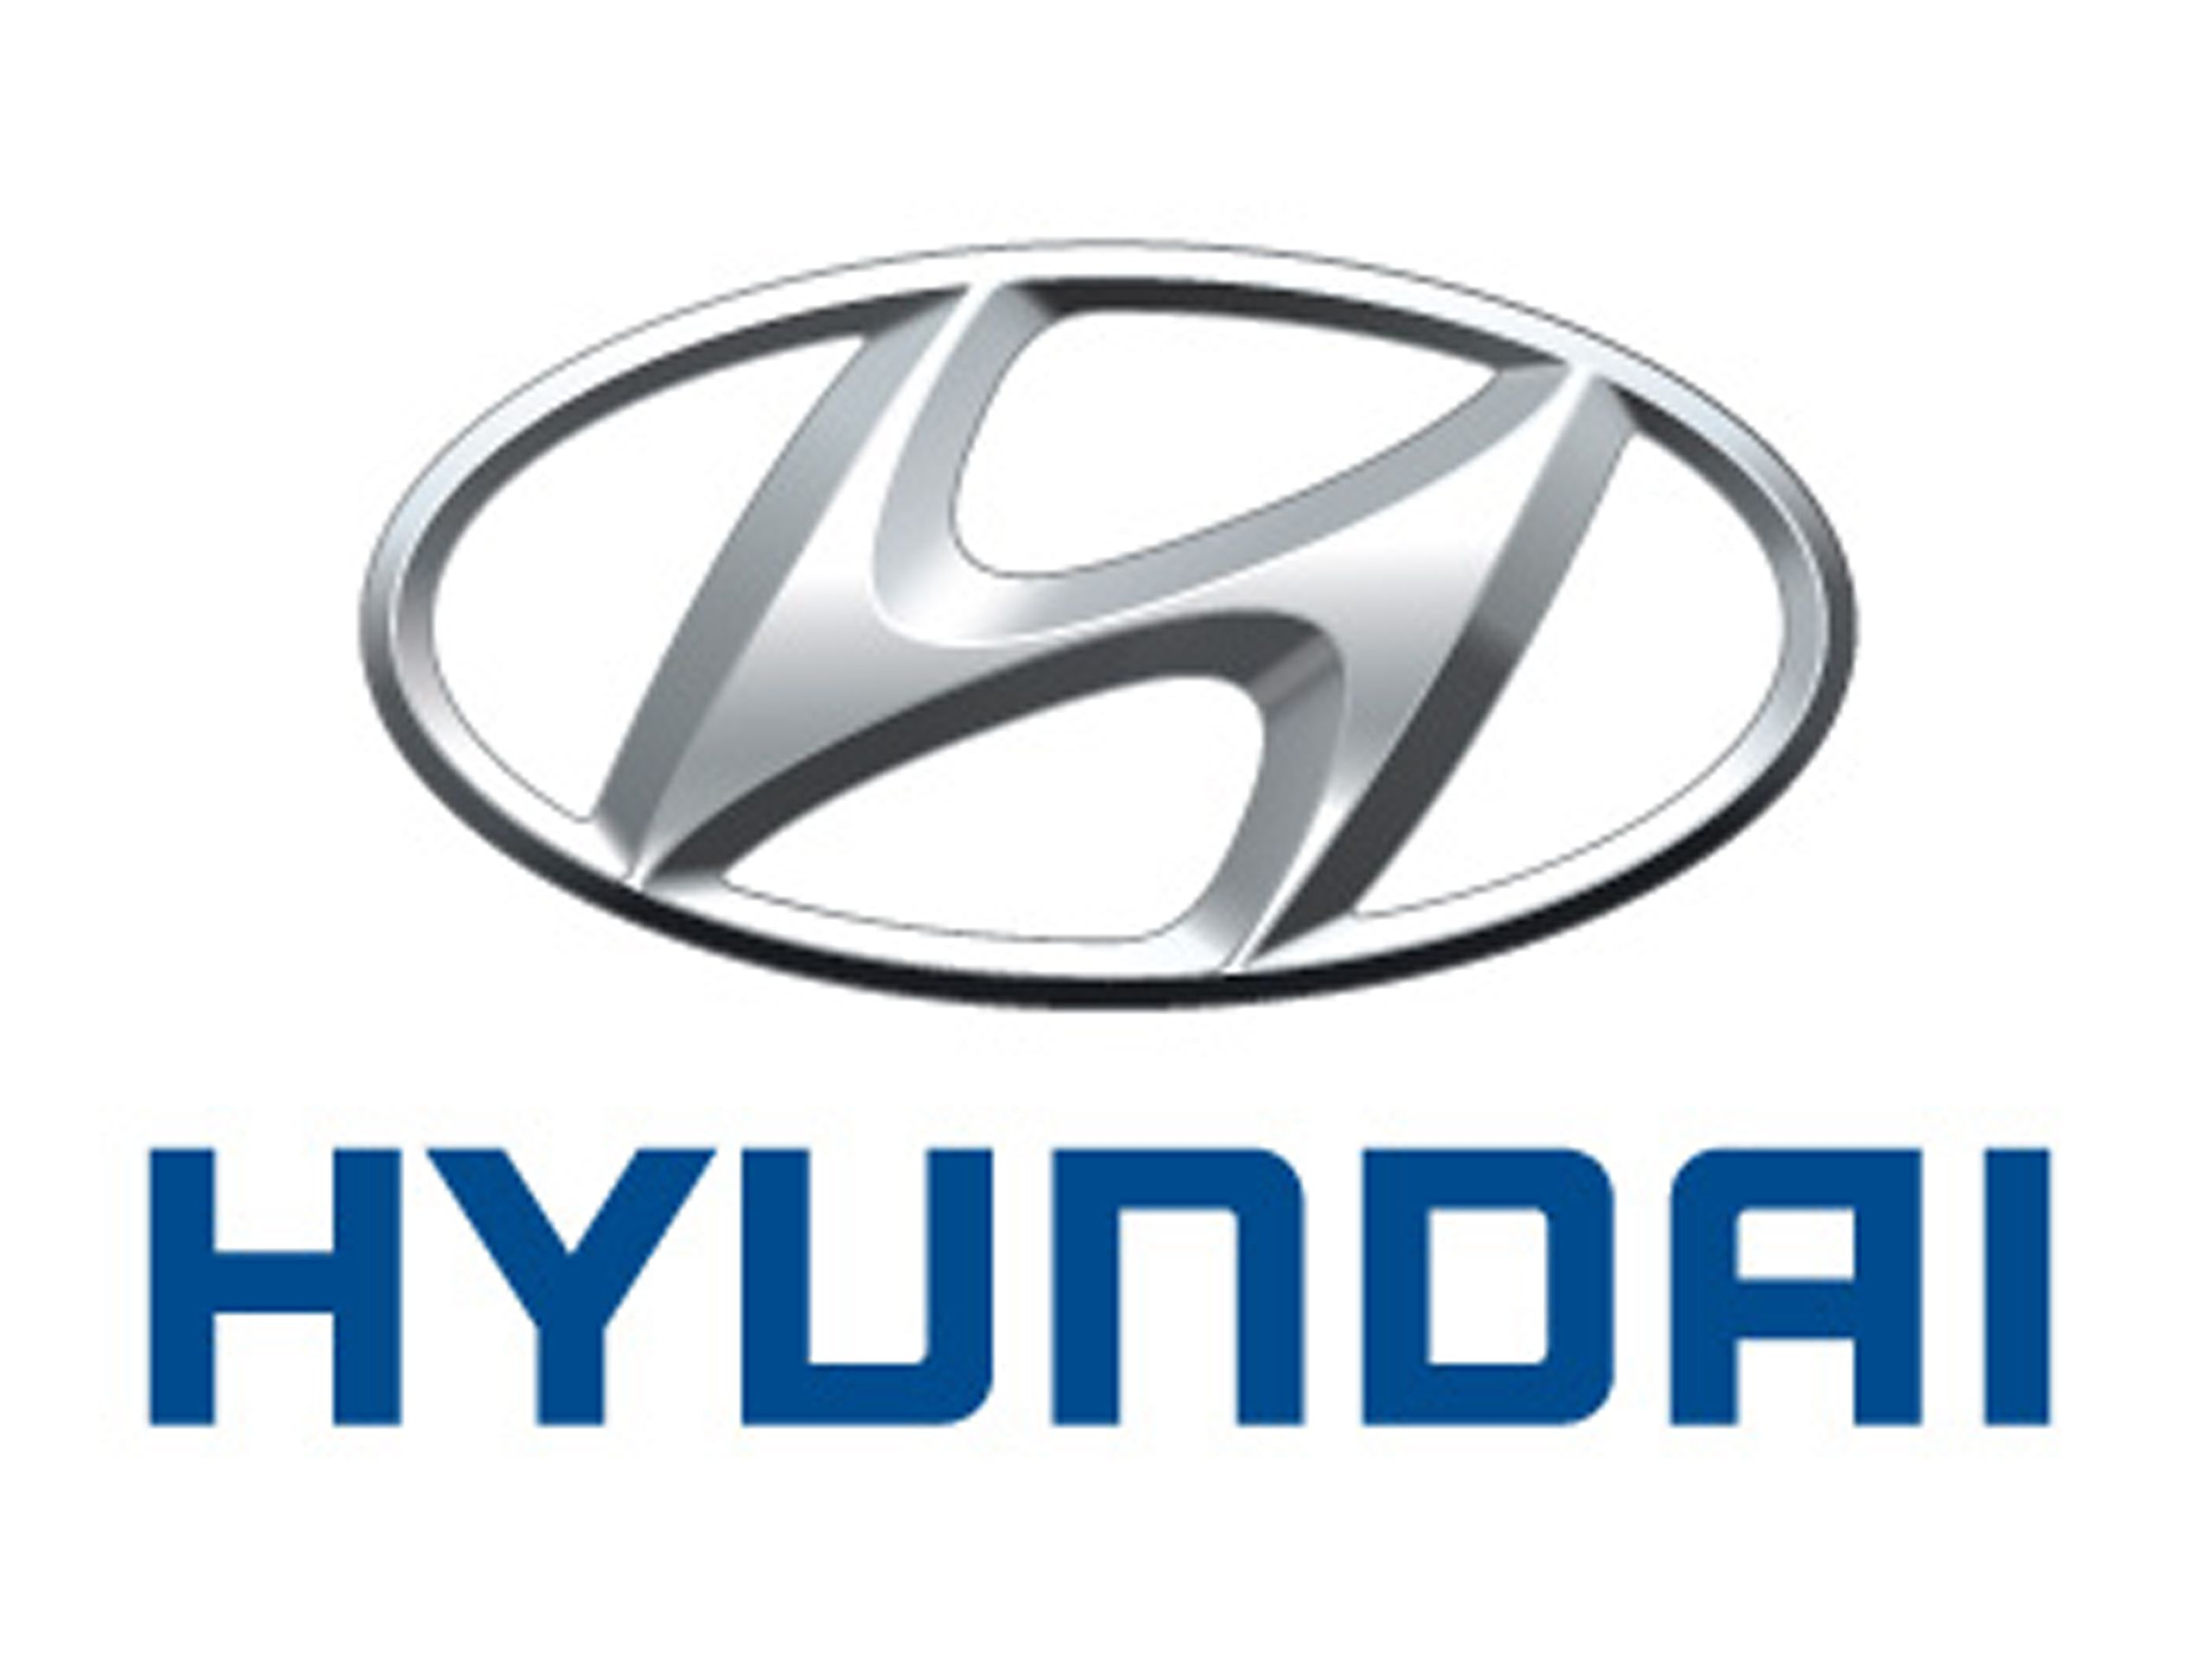 hight resolution of download workshop manuals for hyundai all model at great price from emanualonline com